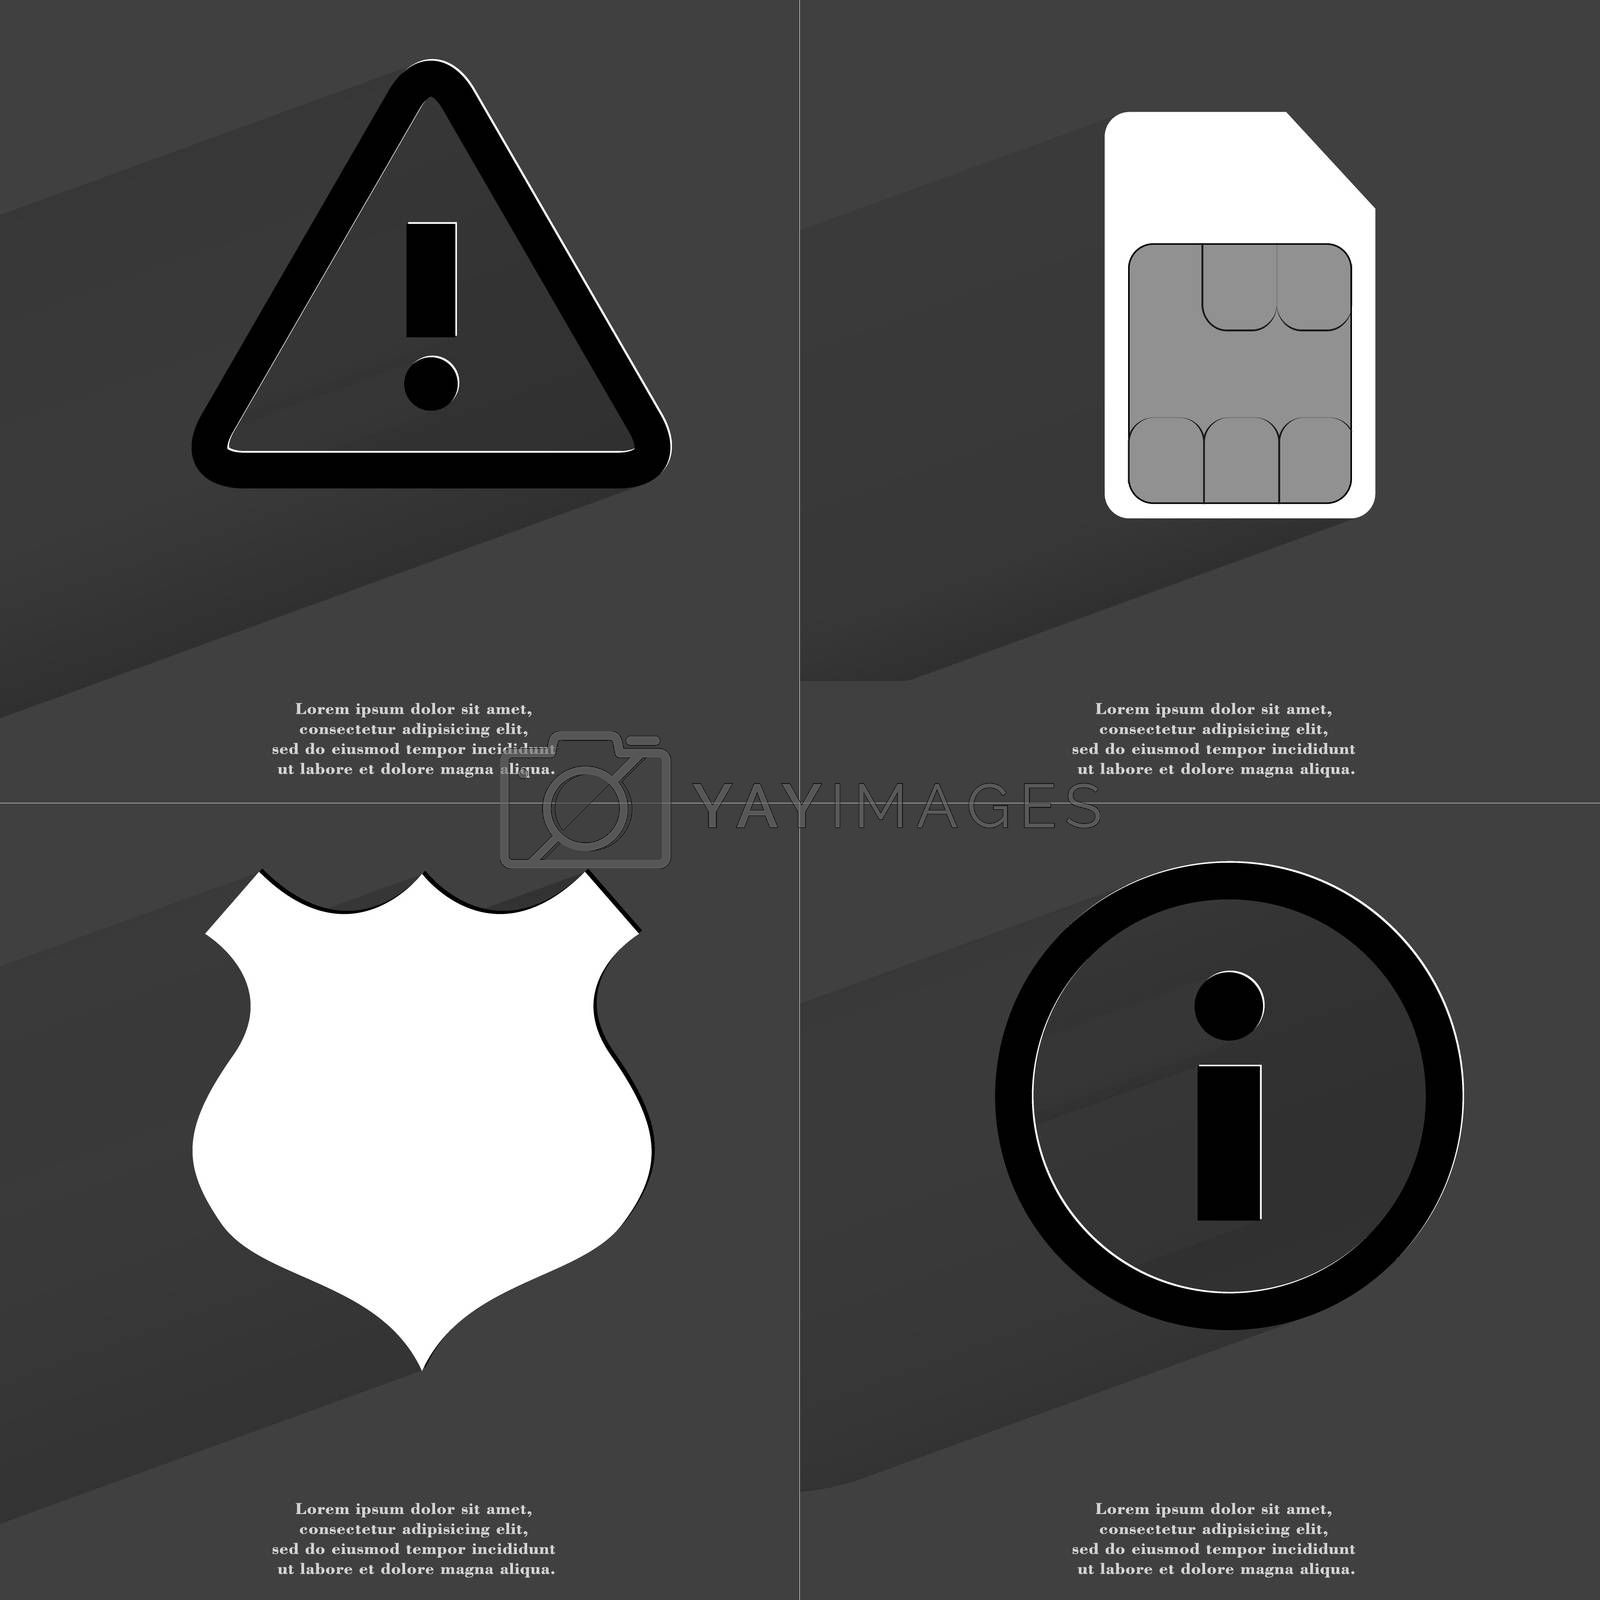 Royalty free image of Warning sign, SIM card, Police badge, Information sign. Symbols with long shadow. Flat design by serhii_lohvyniuk